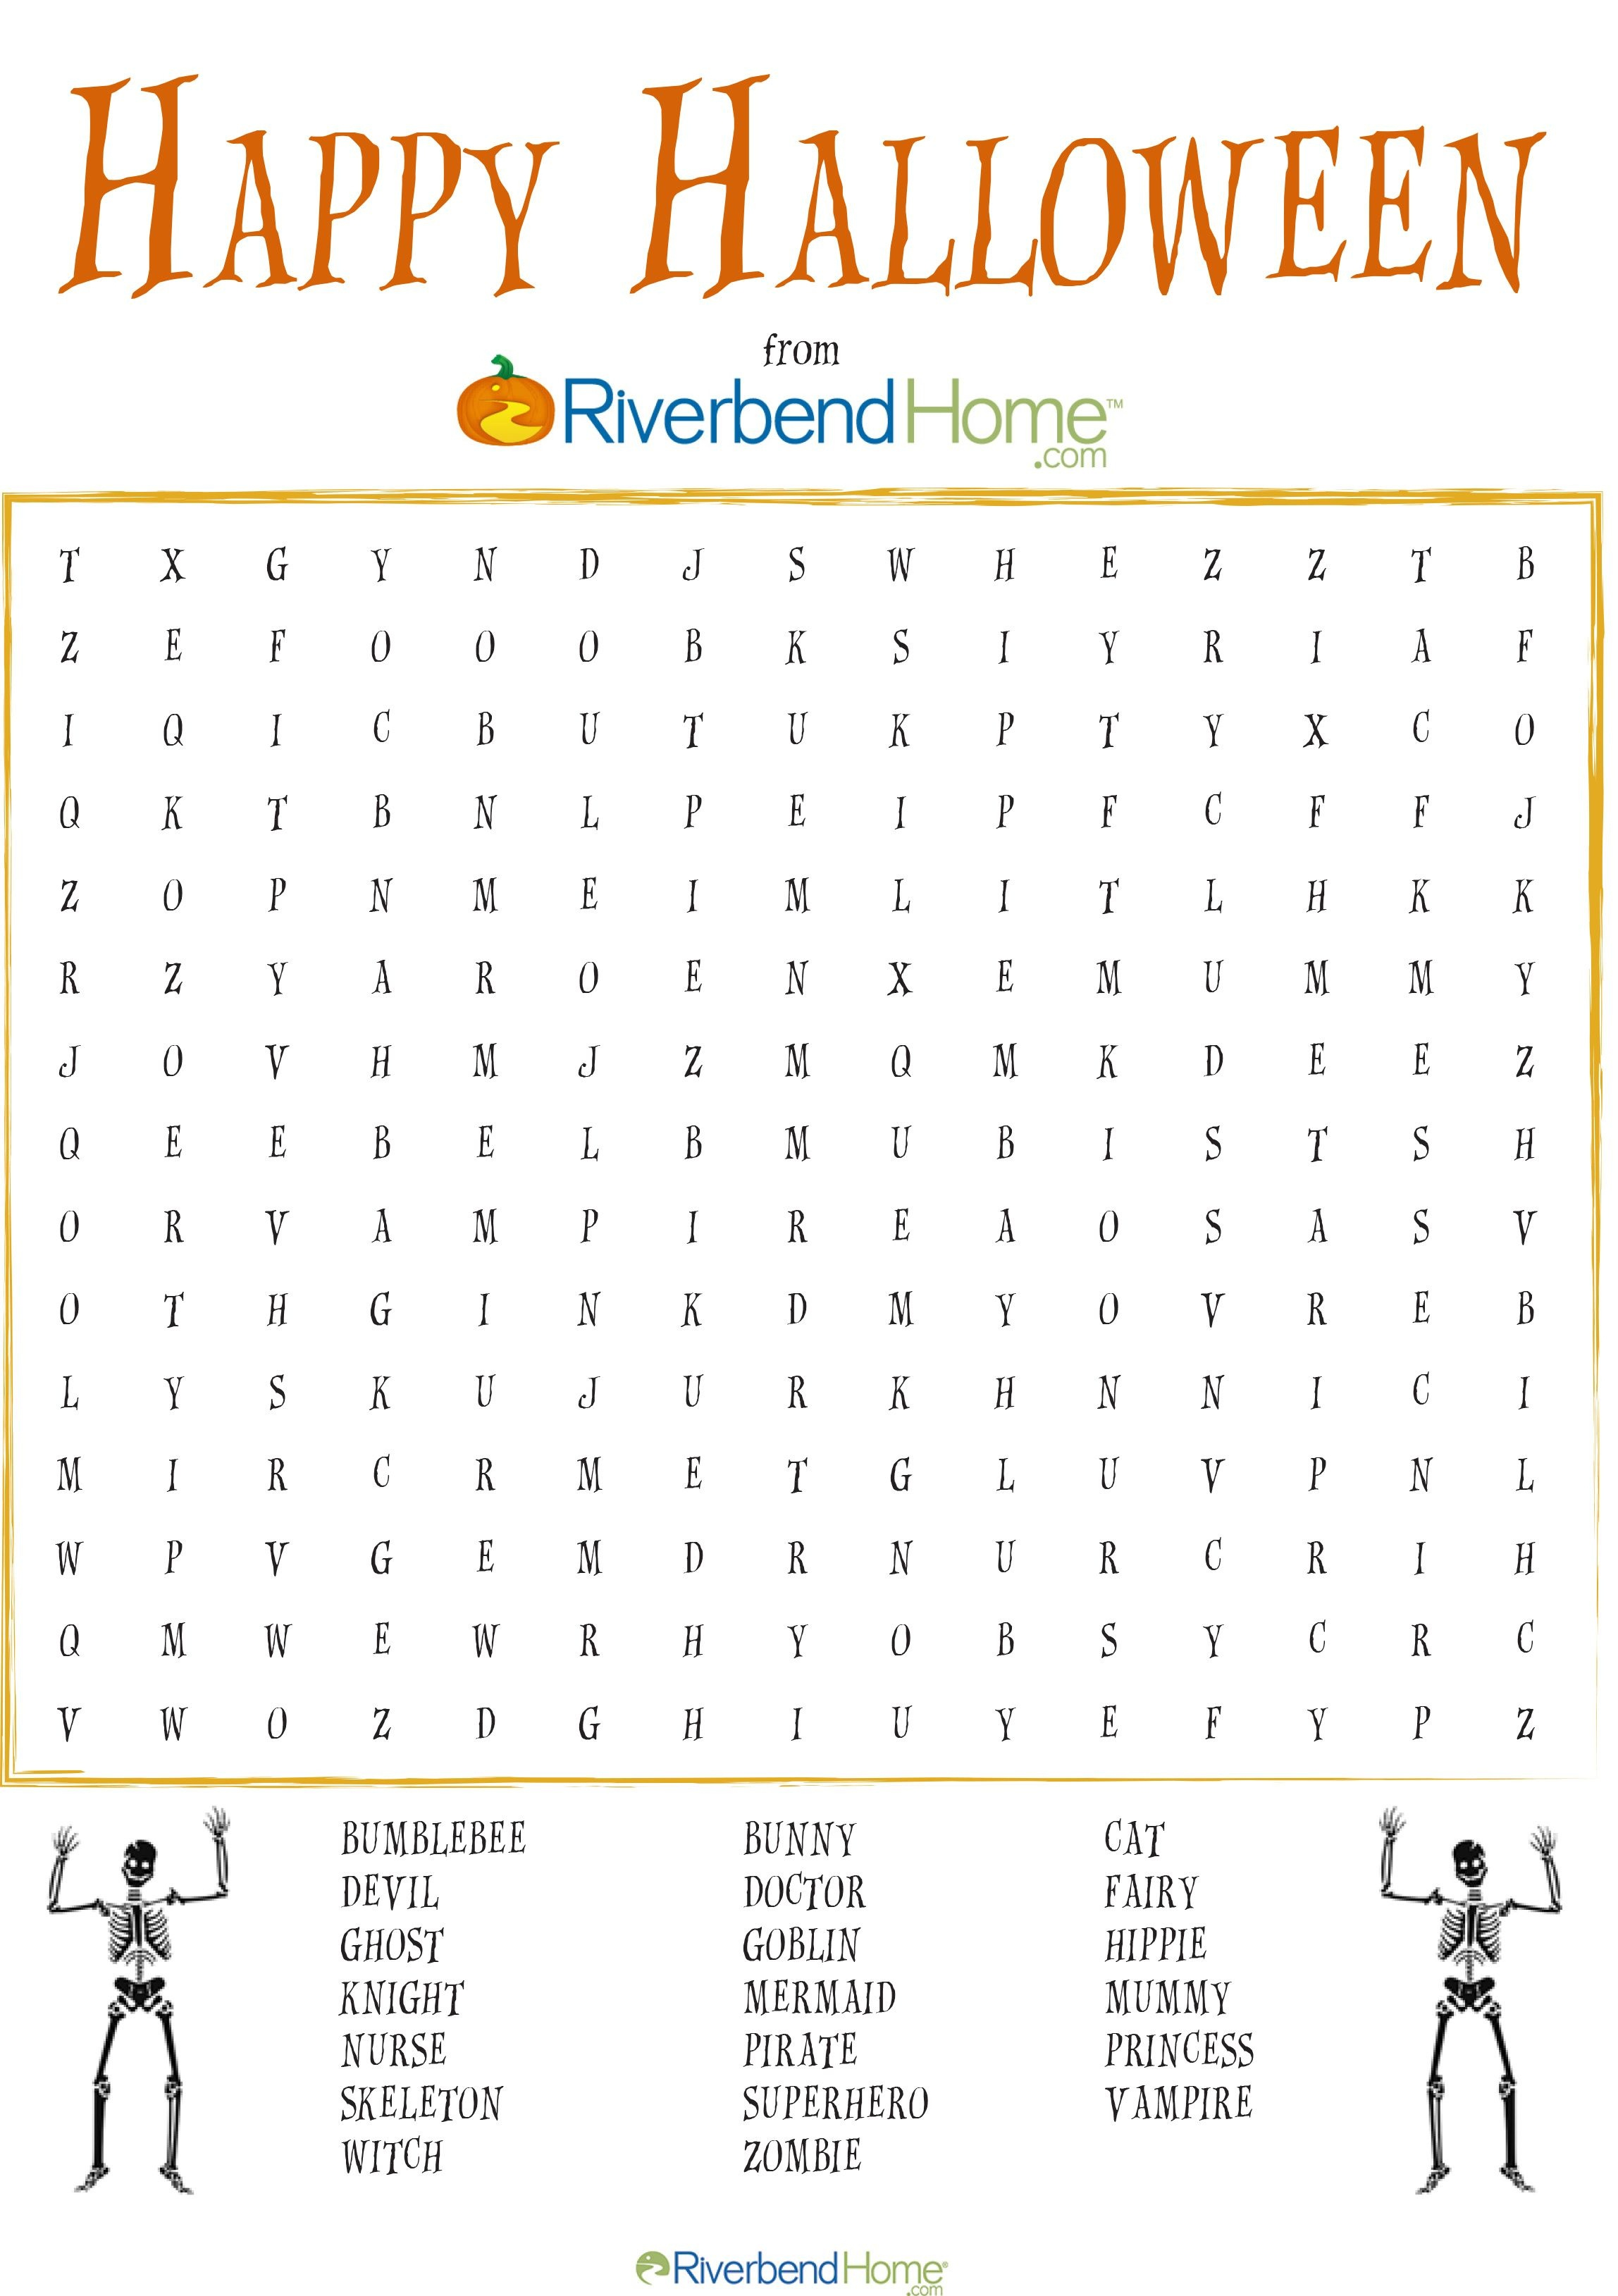 Free Printable Halloween Word Search Puzzle   Halloween   Halloween - Free Printable Halloween Word Search